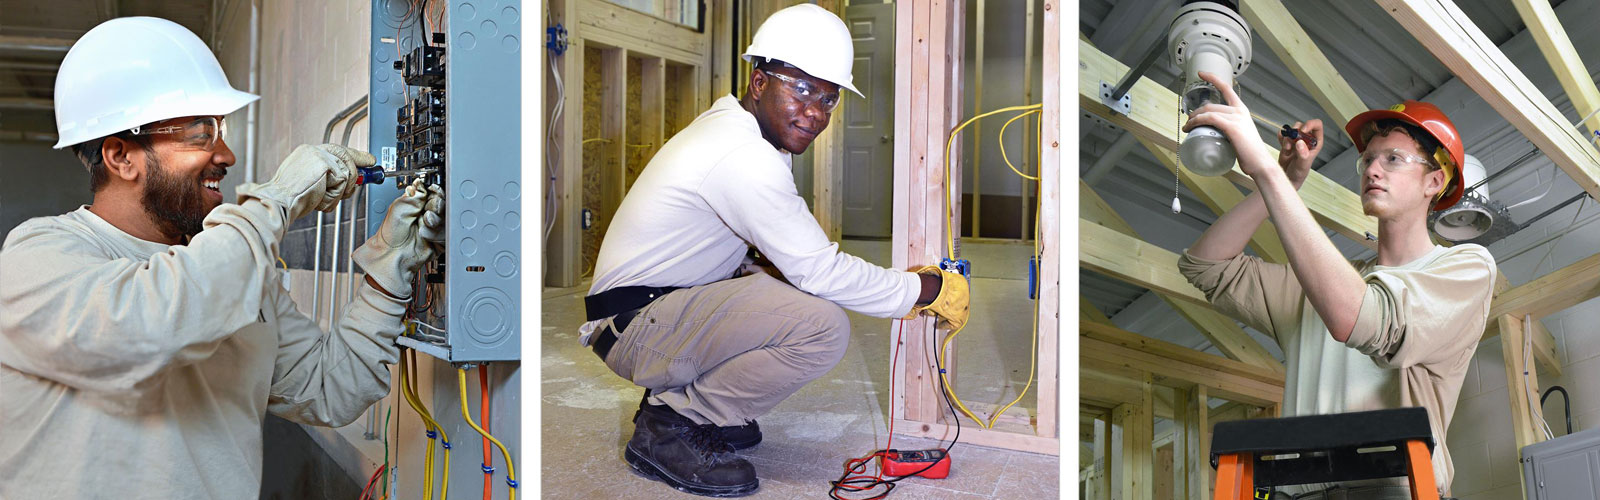 MTTI student installing an electrical outlet in training module.